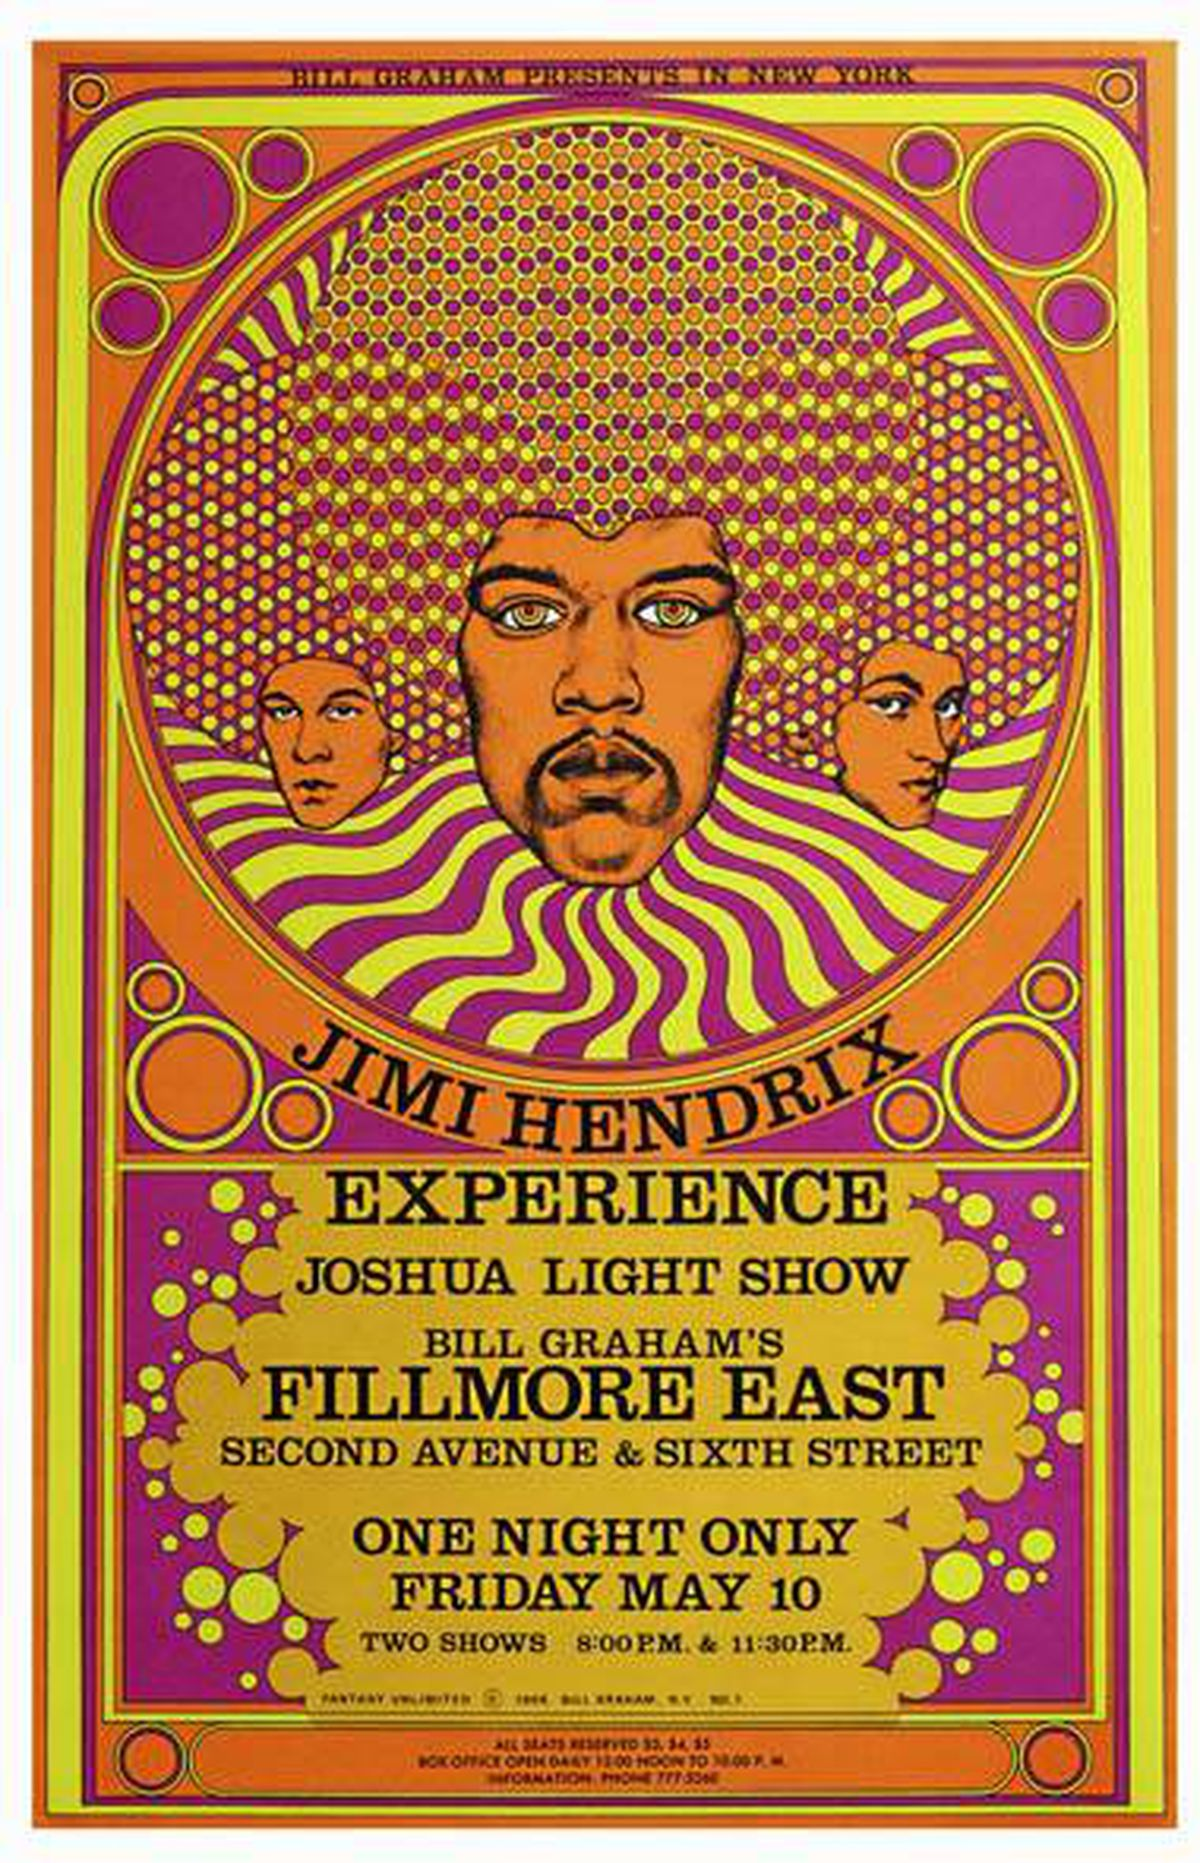 Poster for the Jimi Hendrix Experience at the Fillmore East, New York City, May 10, 1968 by artist David Byrd. Part of a collection of rare and valuable posters gifted to the AGO, photographed on February 18, 2011.